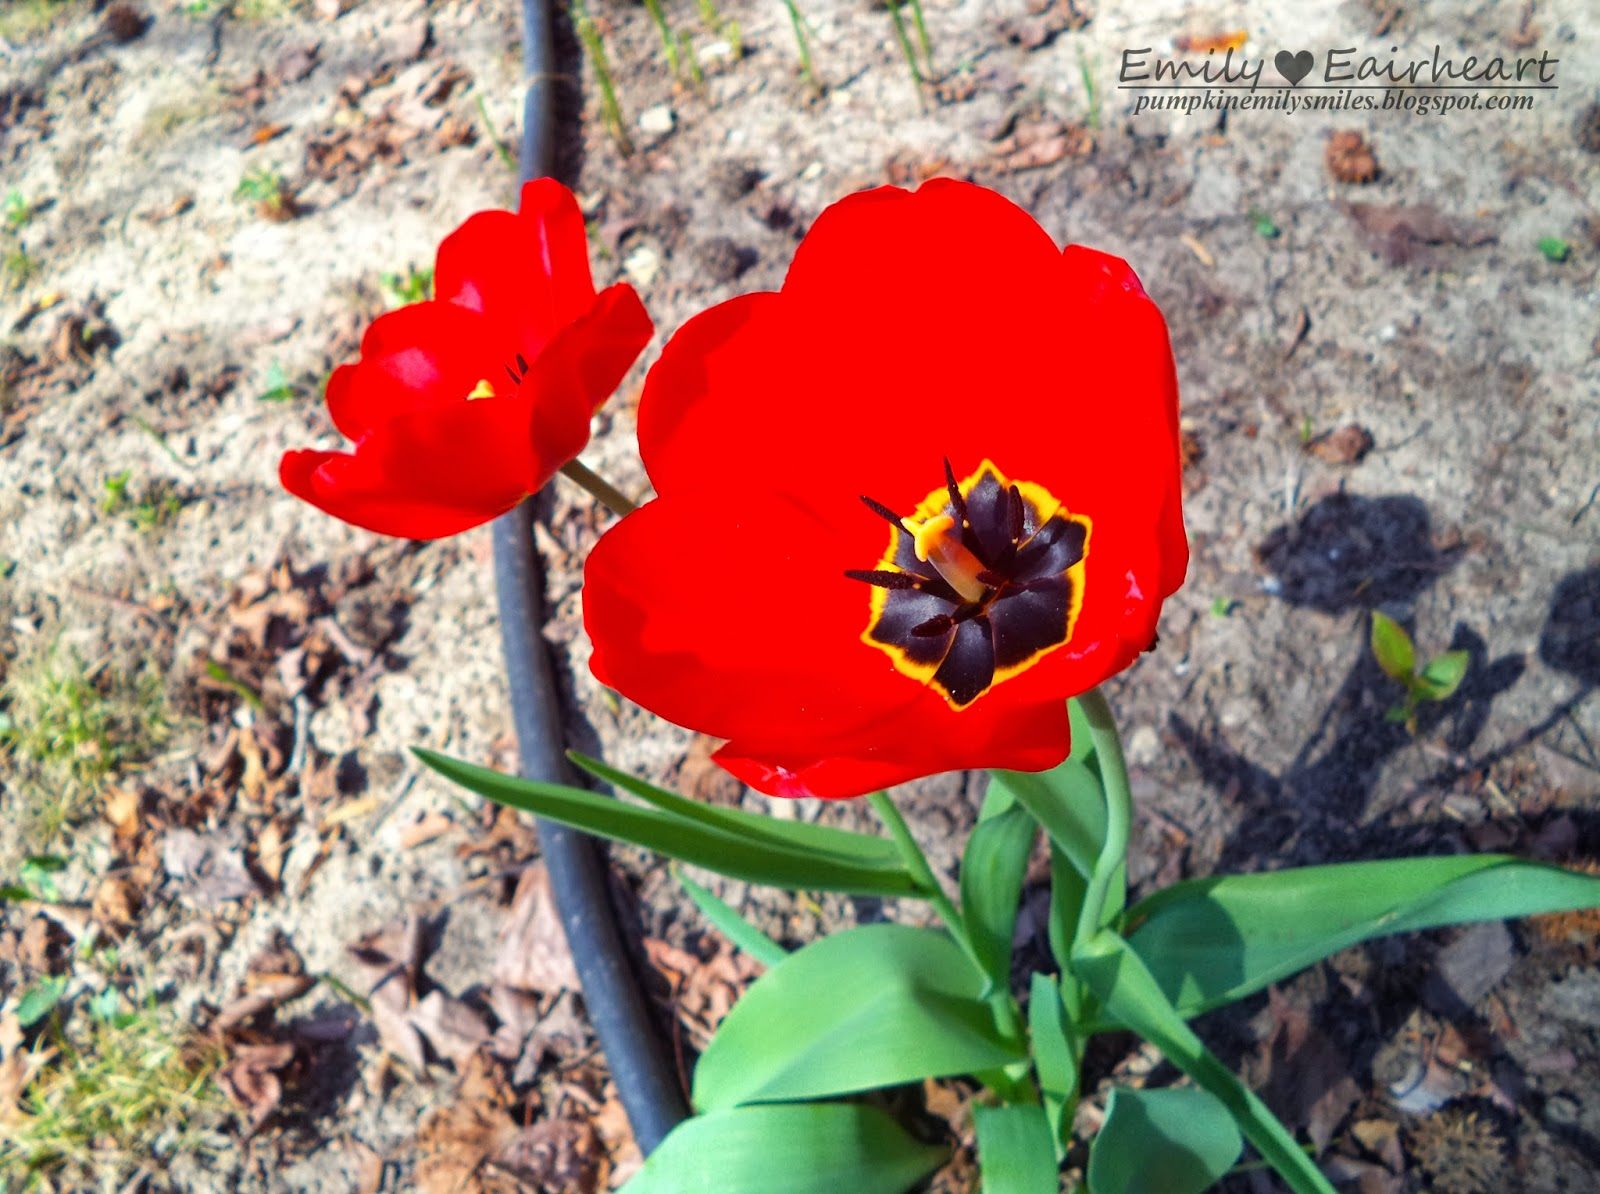 Two open red Tulips